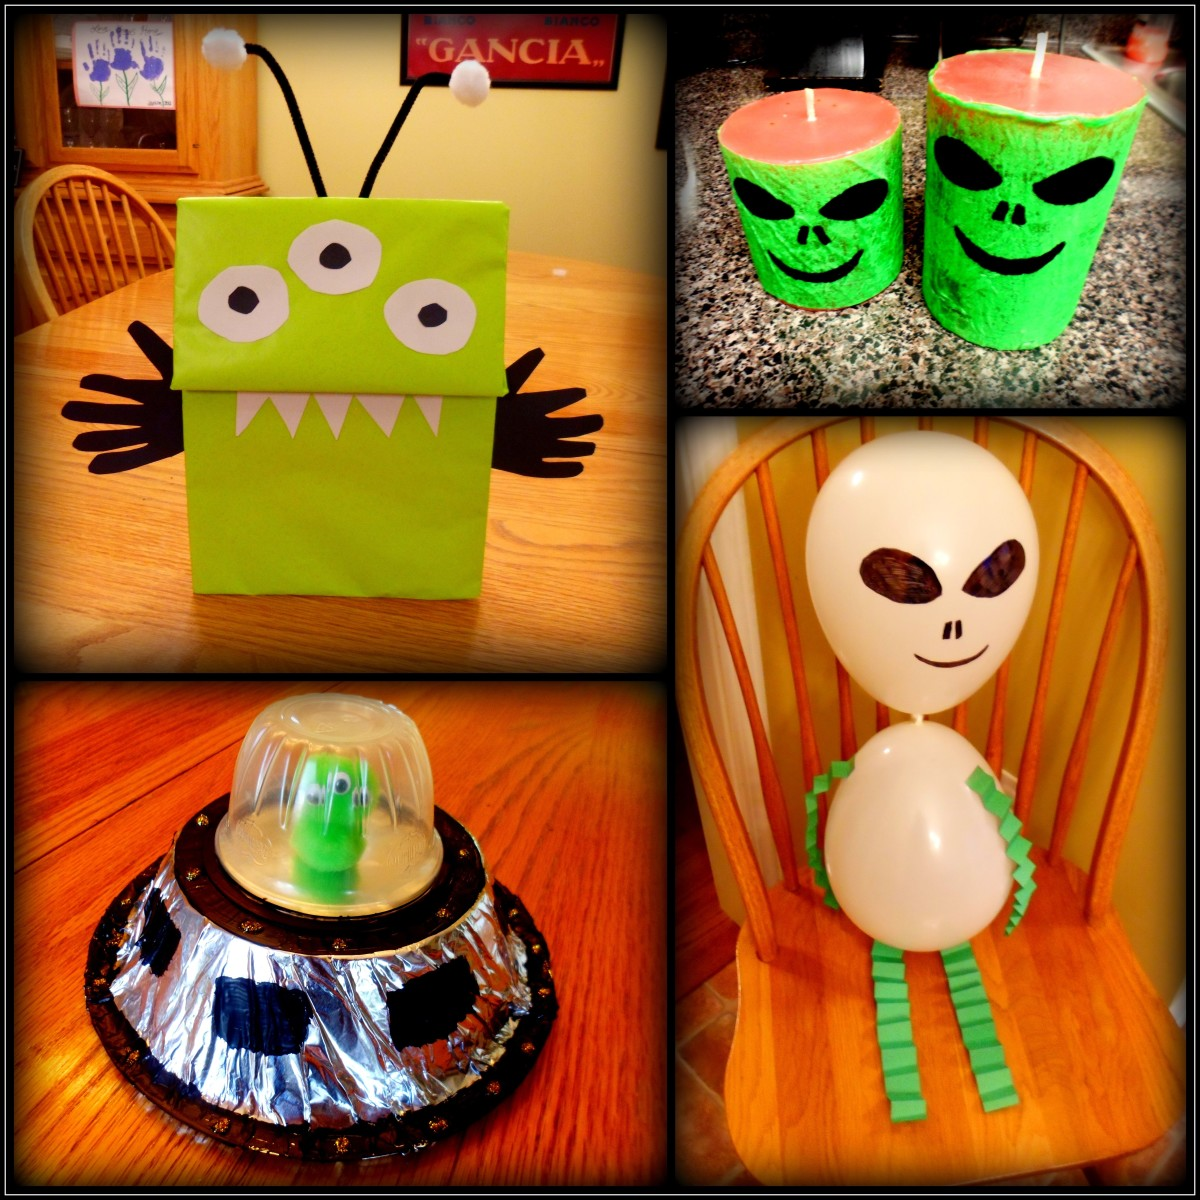 Fun and easy alien crafts for kids to make.